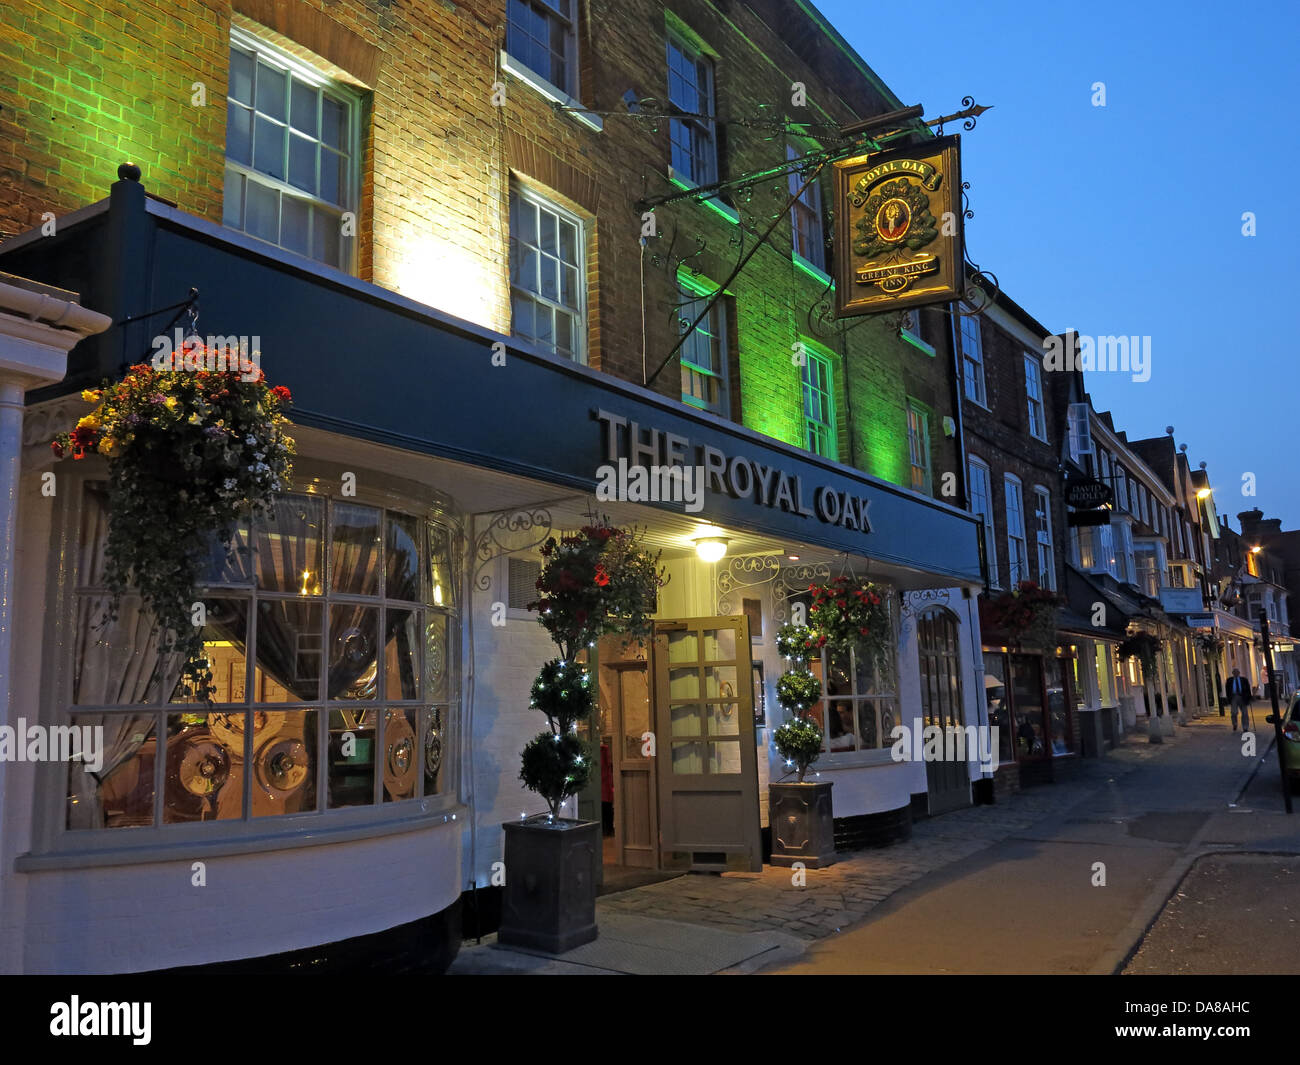 The Royal Oak pub in Marlborough,Wiltshire,SW,England,at,dusk,traditional,english,public,house,beers,beer,bar,ale,ales,blue,hour,bluehour,south,west,tourist,tourism,warm,bright,SL8,1NZ,SL81NZ,CAMRA,gotonysmith,Buy Pictures of,Buy Images Of